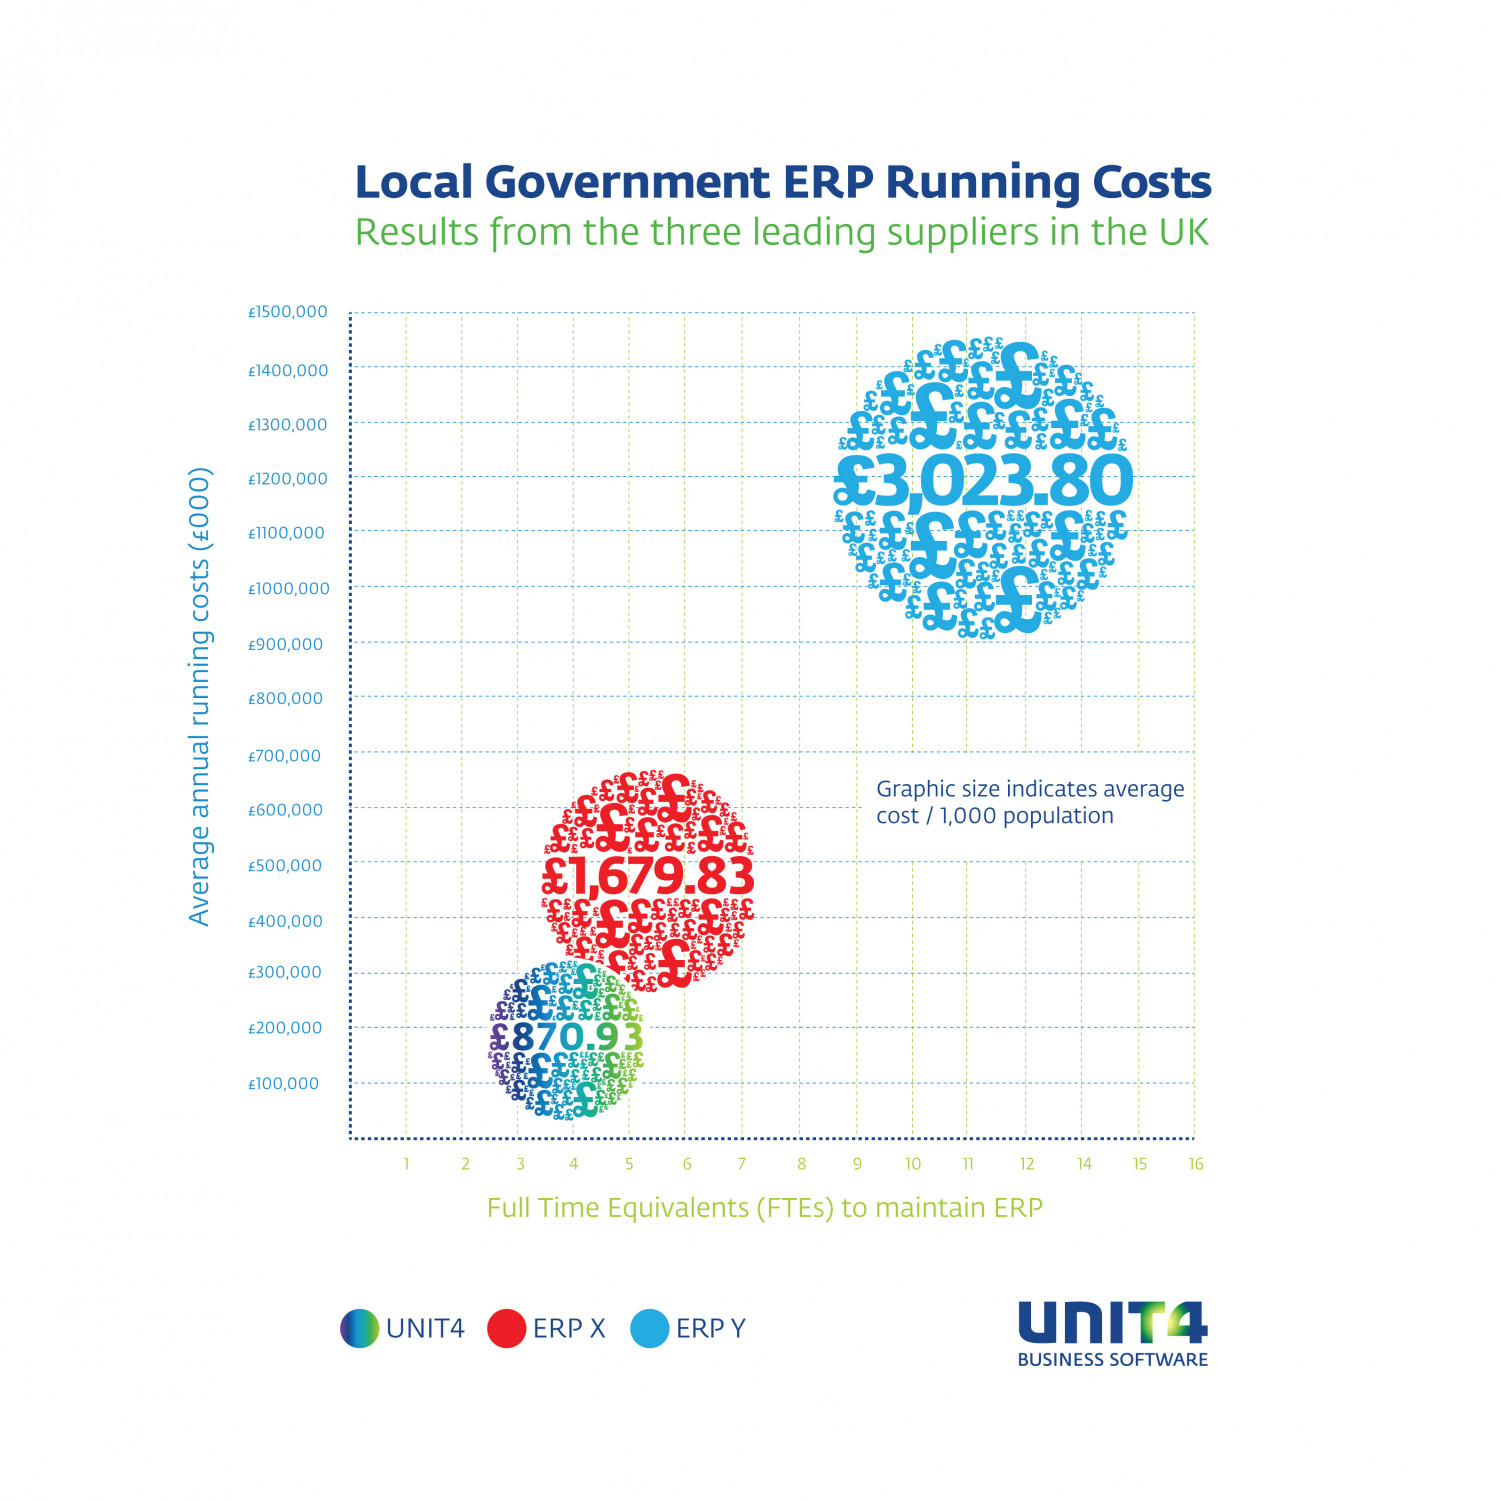 Agresso's Local Government Clients Spend Up To 3.5 Times Less on Annual ERP Running Costs Infographic